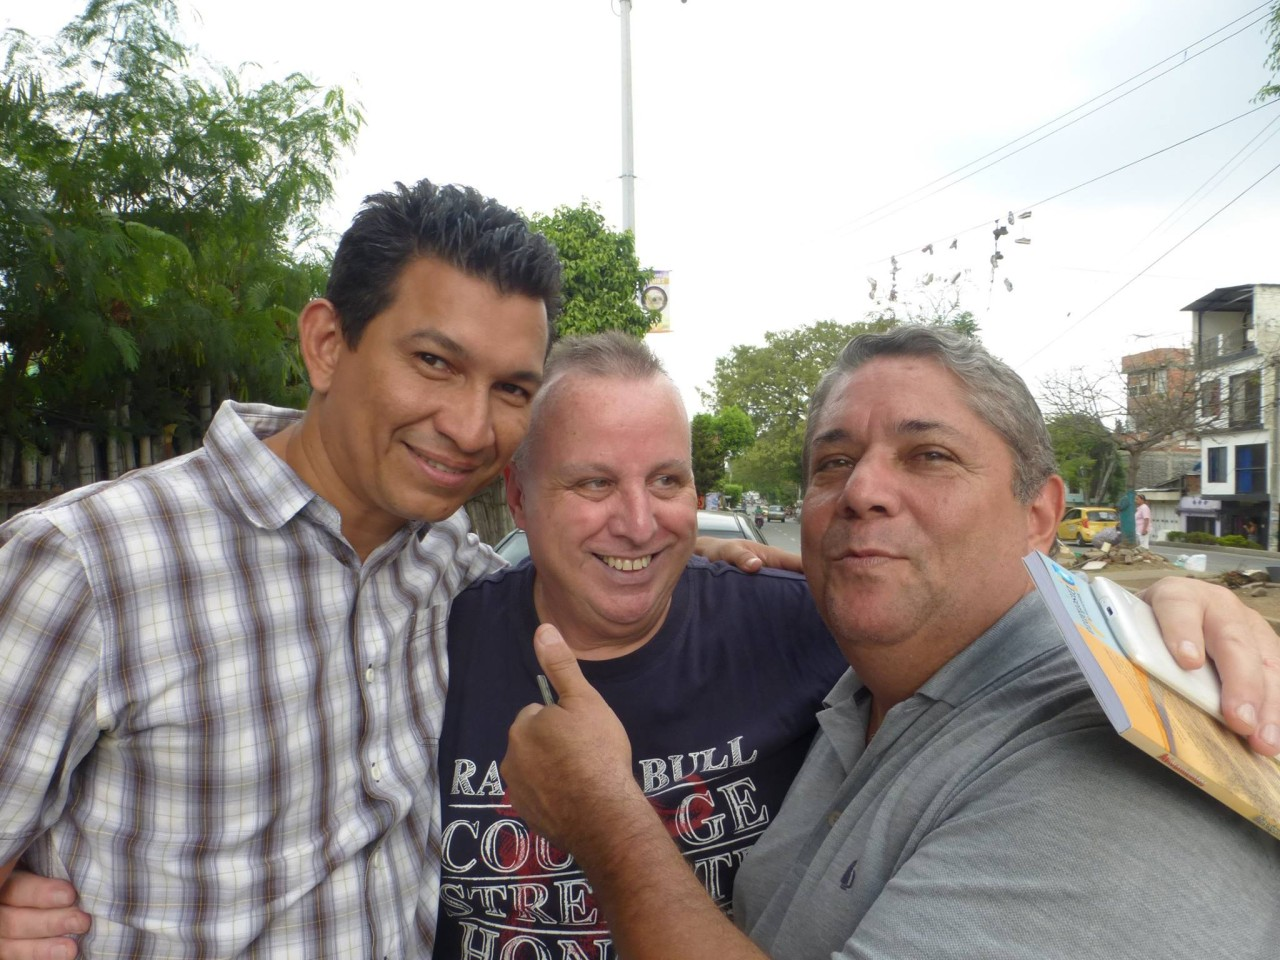 Two of the dearest friends a man could have: Pastors Wilmar Gomez and William Castaño Baron, with photo-bomber....I'm so privileged to be their friend